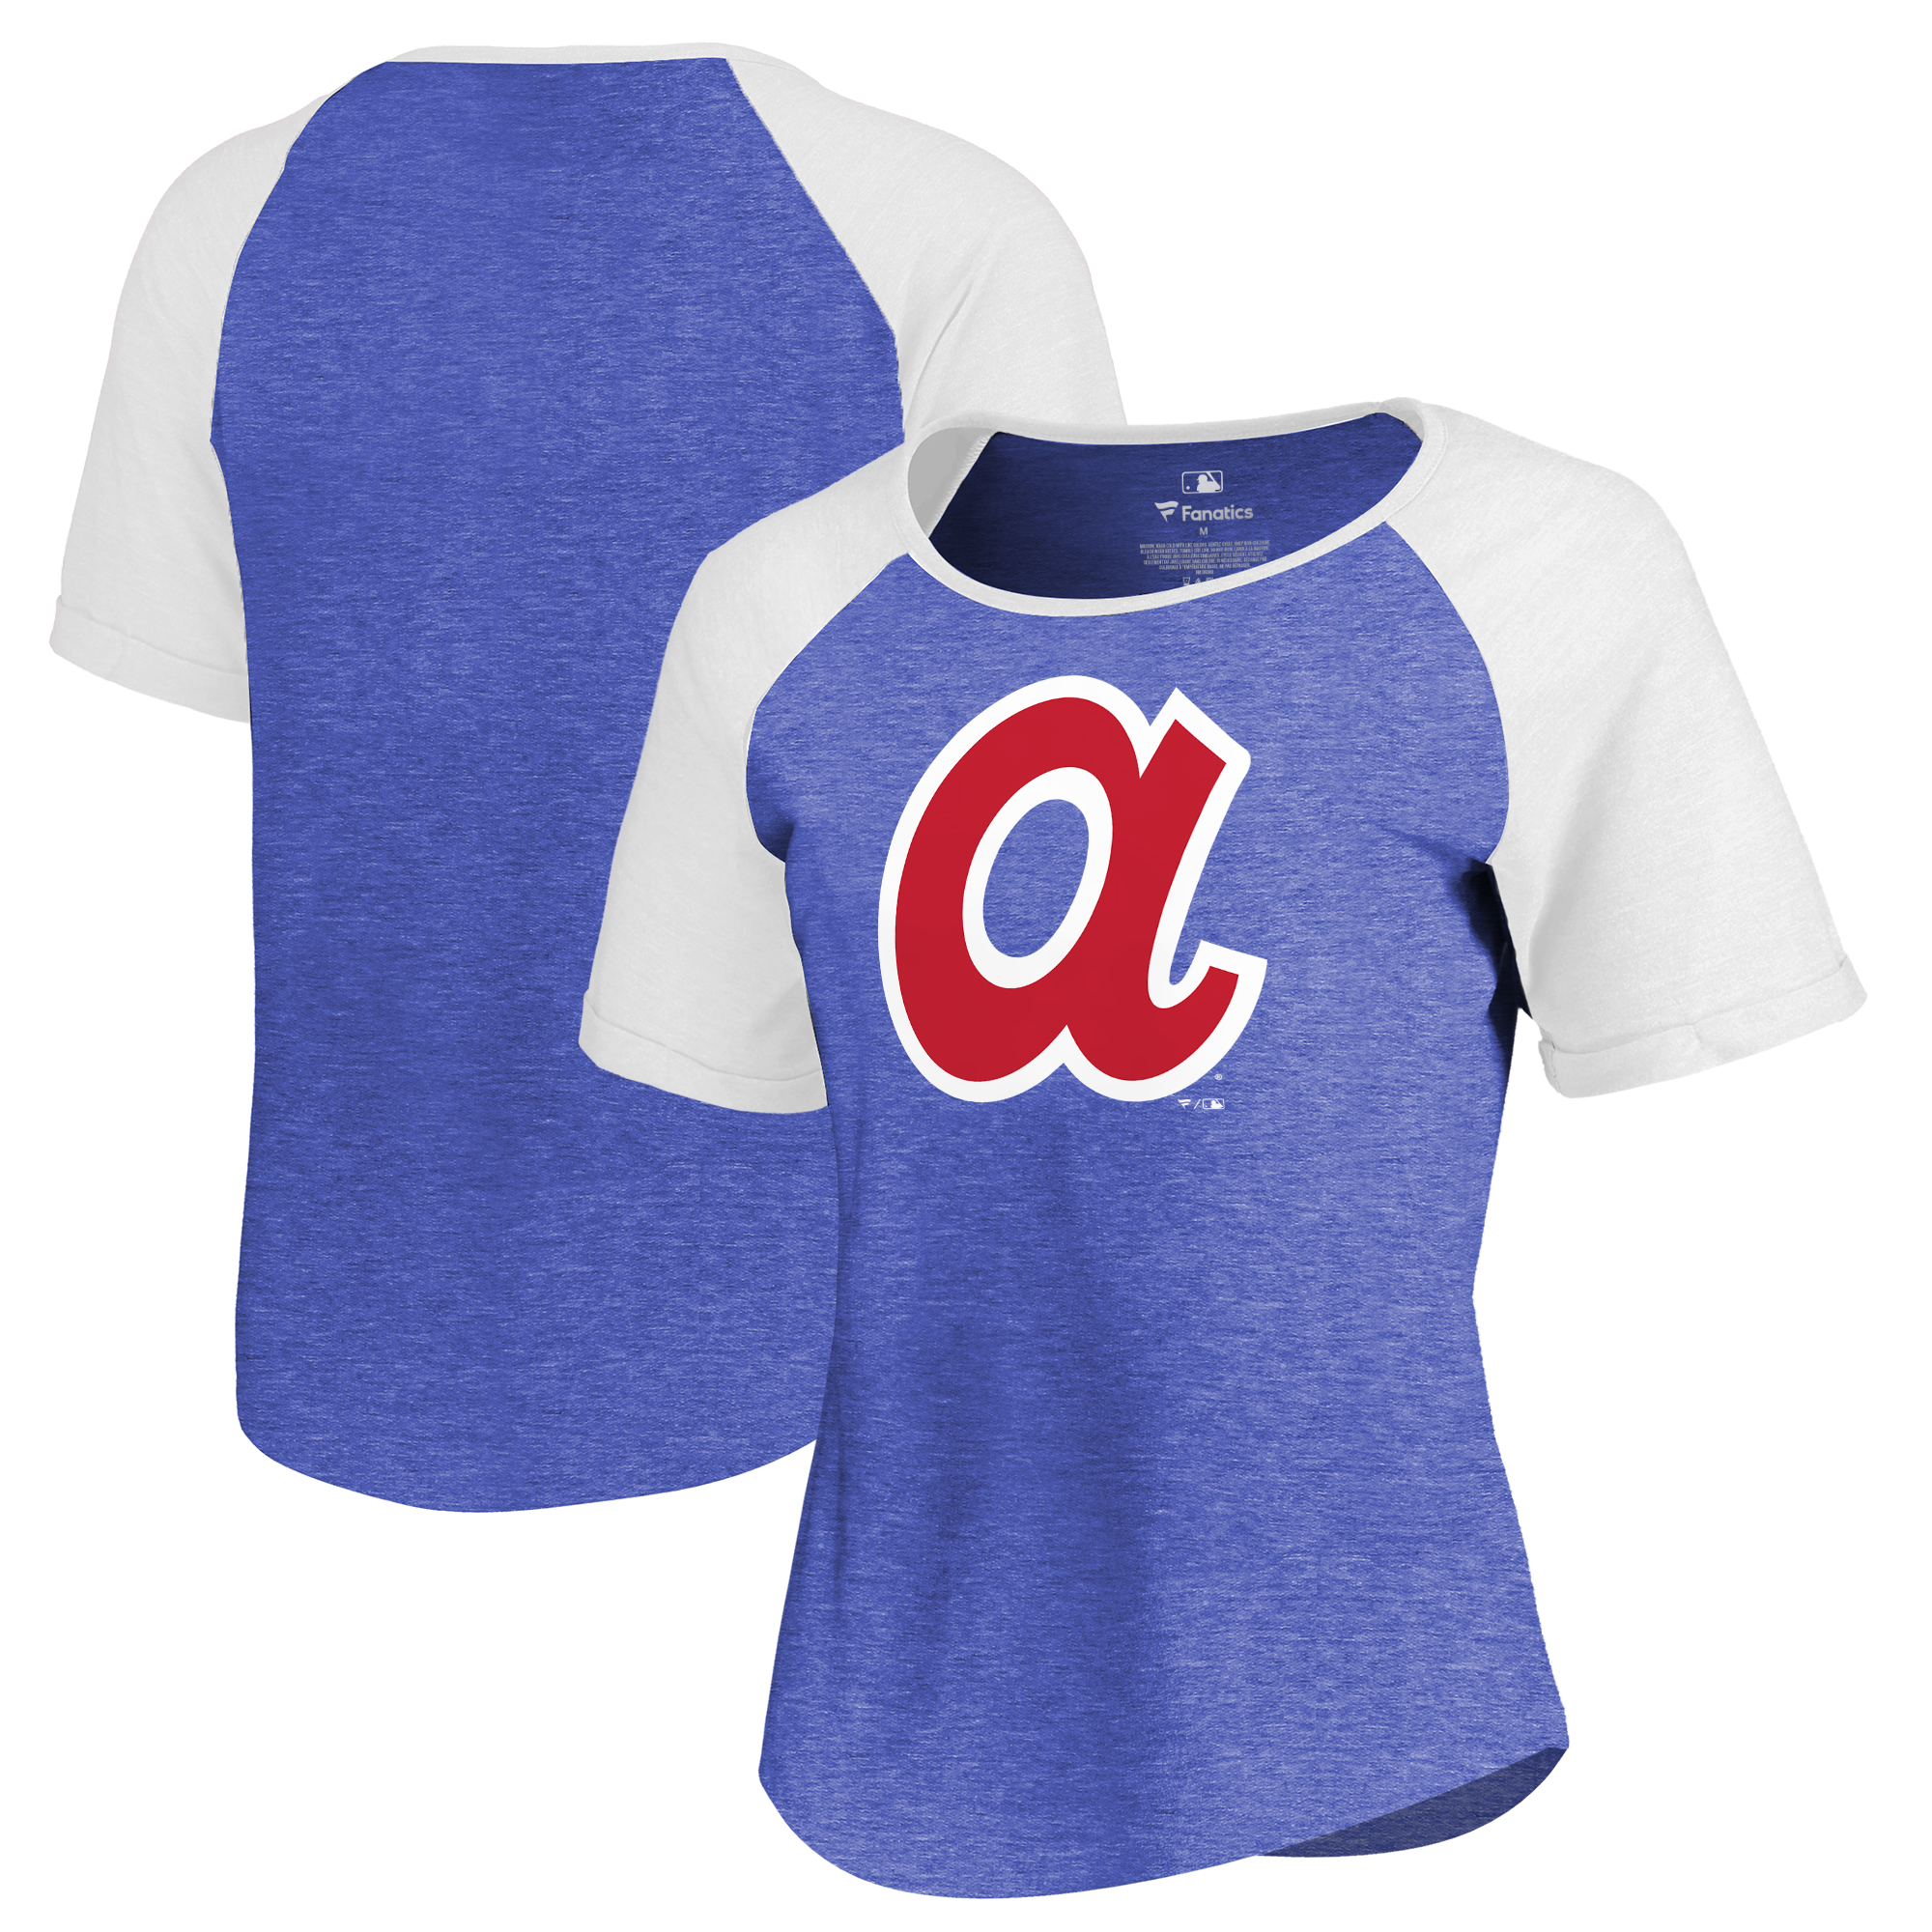 Atlanta Braves Fanatics Branded Women's Huntington Cooperstown Collection Tri-Blend T-Shirt - Royal